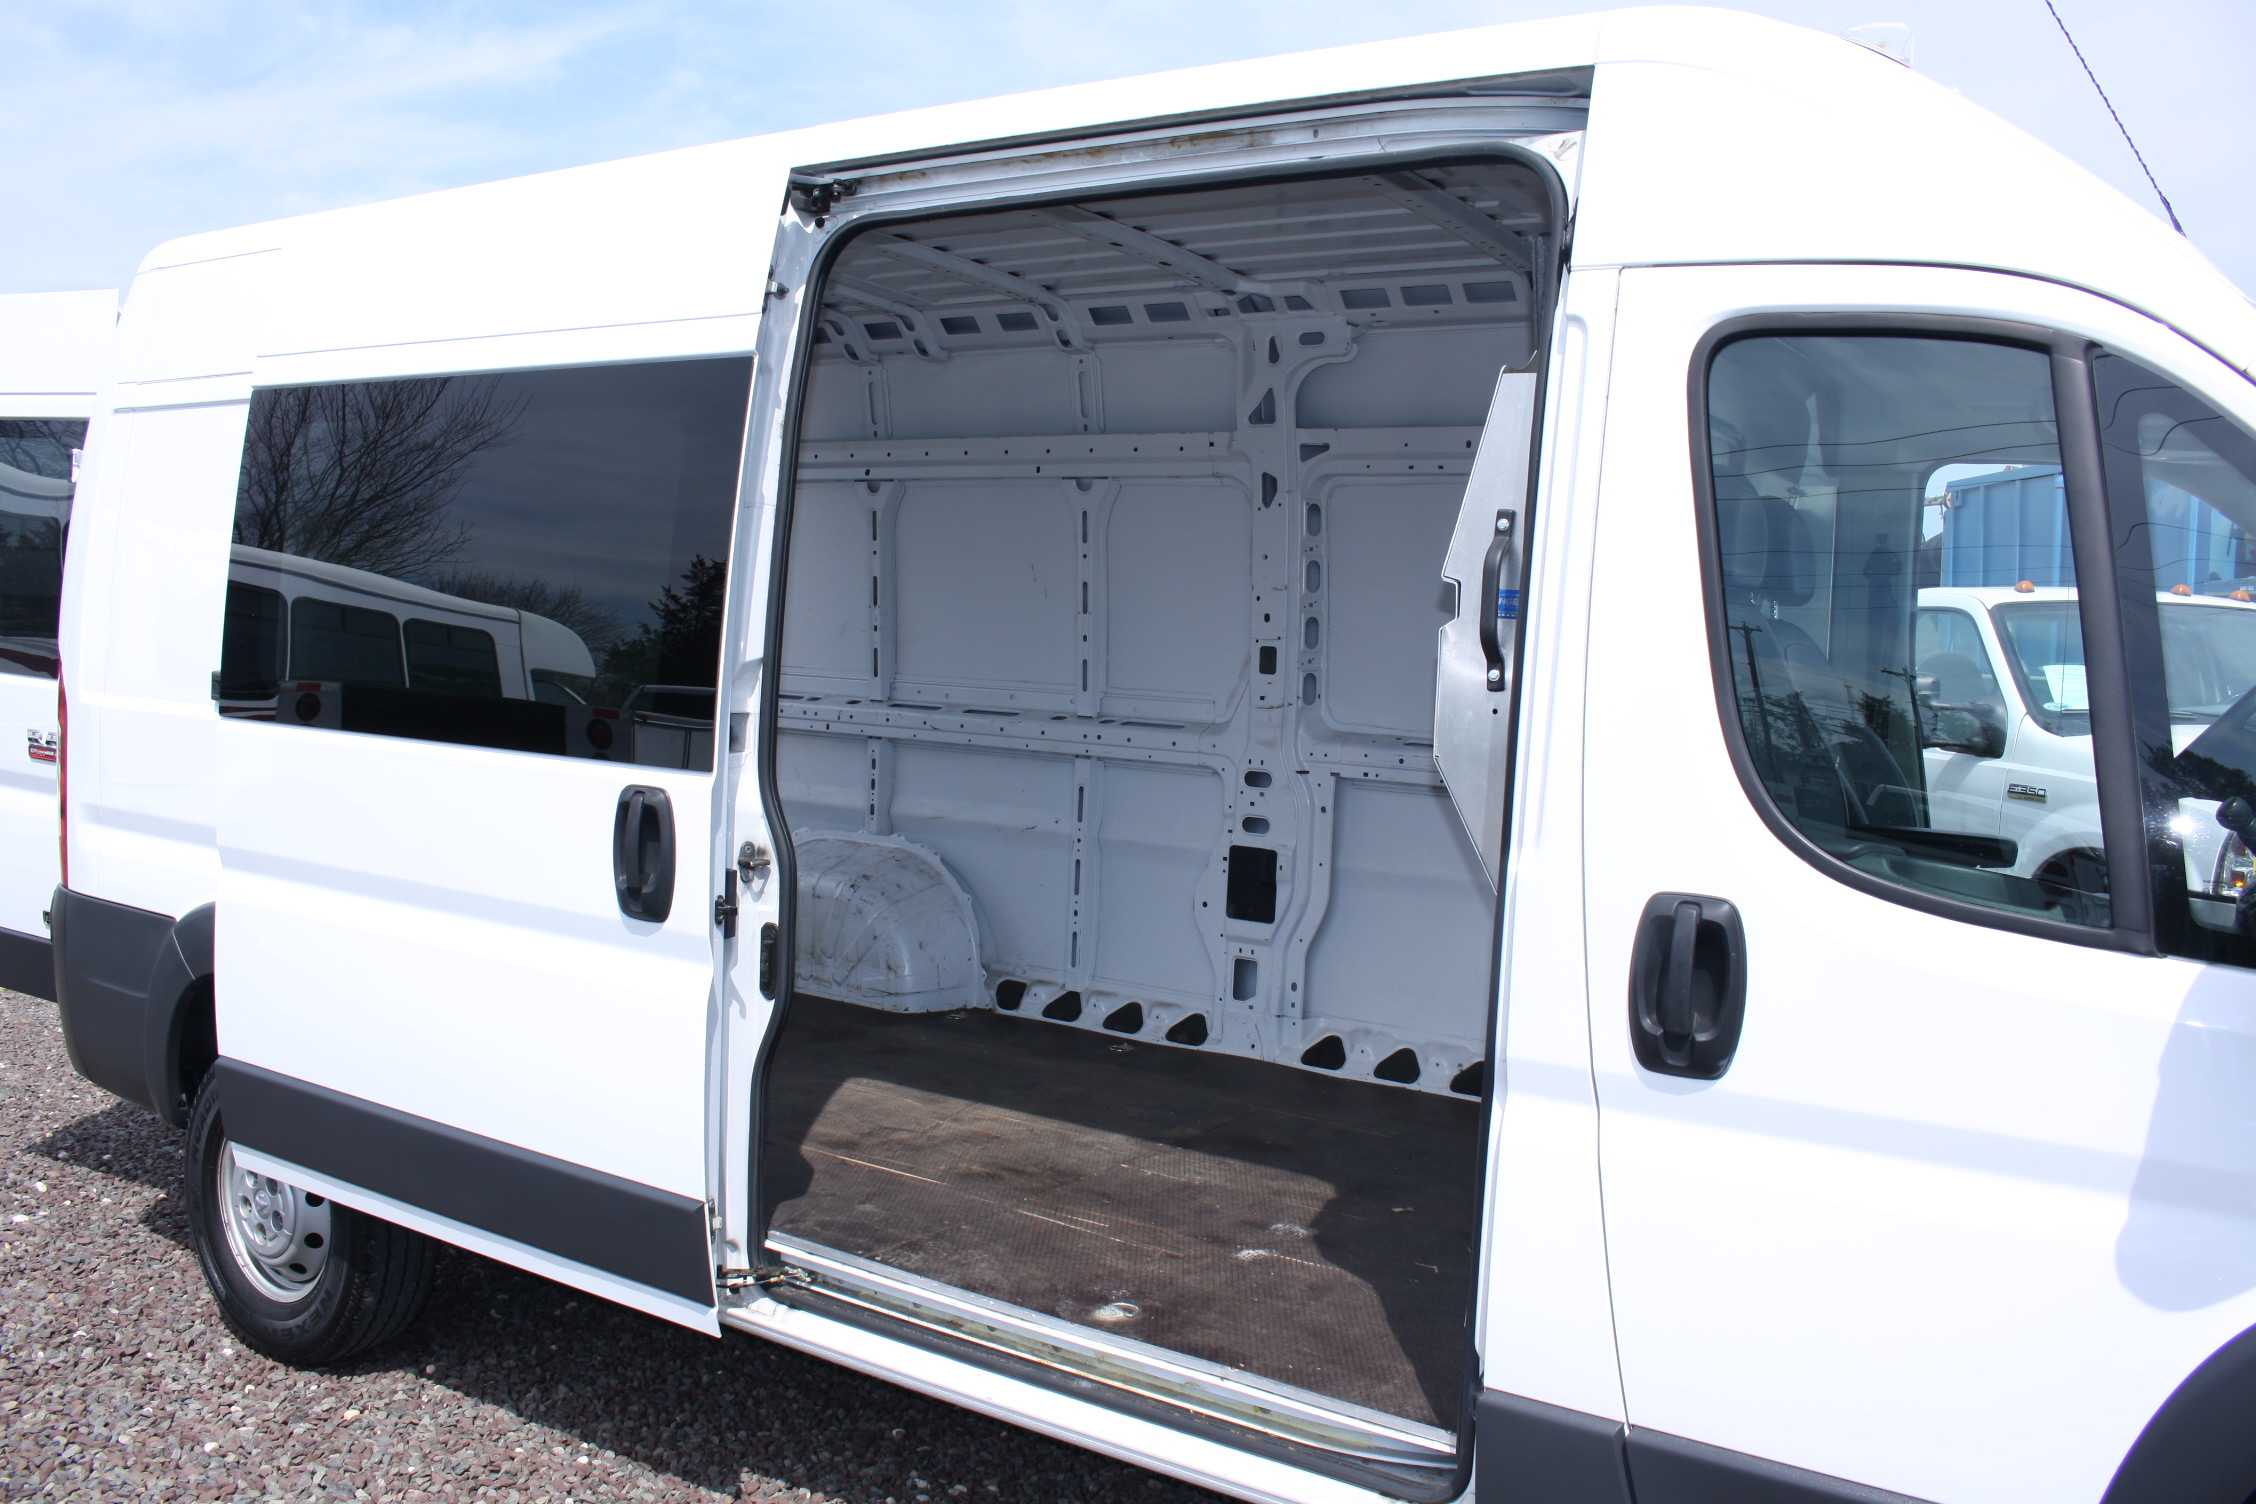 IMG 3069 - 2015 RAM PROMASTER 3500 HIGH ROOF VAN WITH ECODIESEL